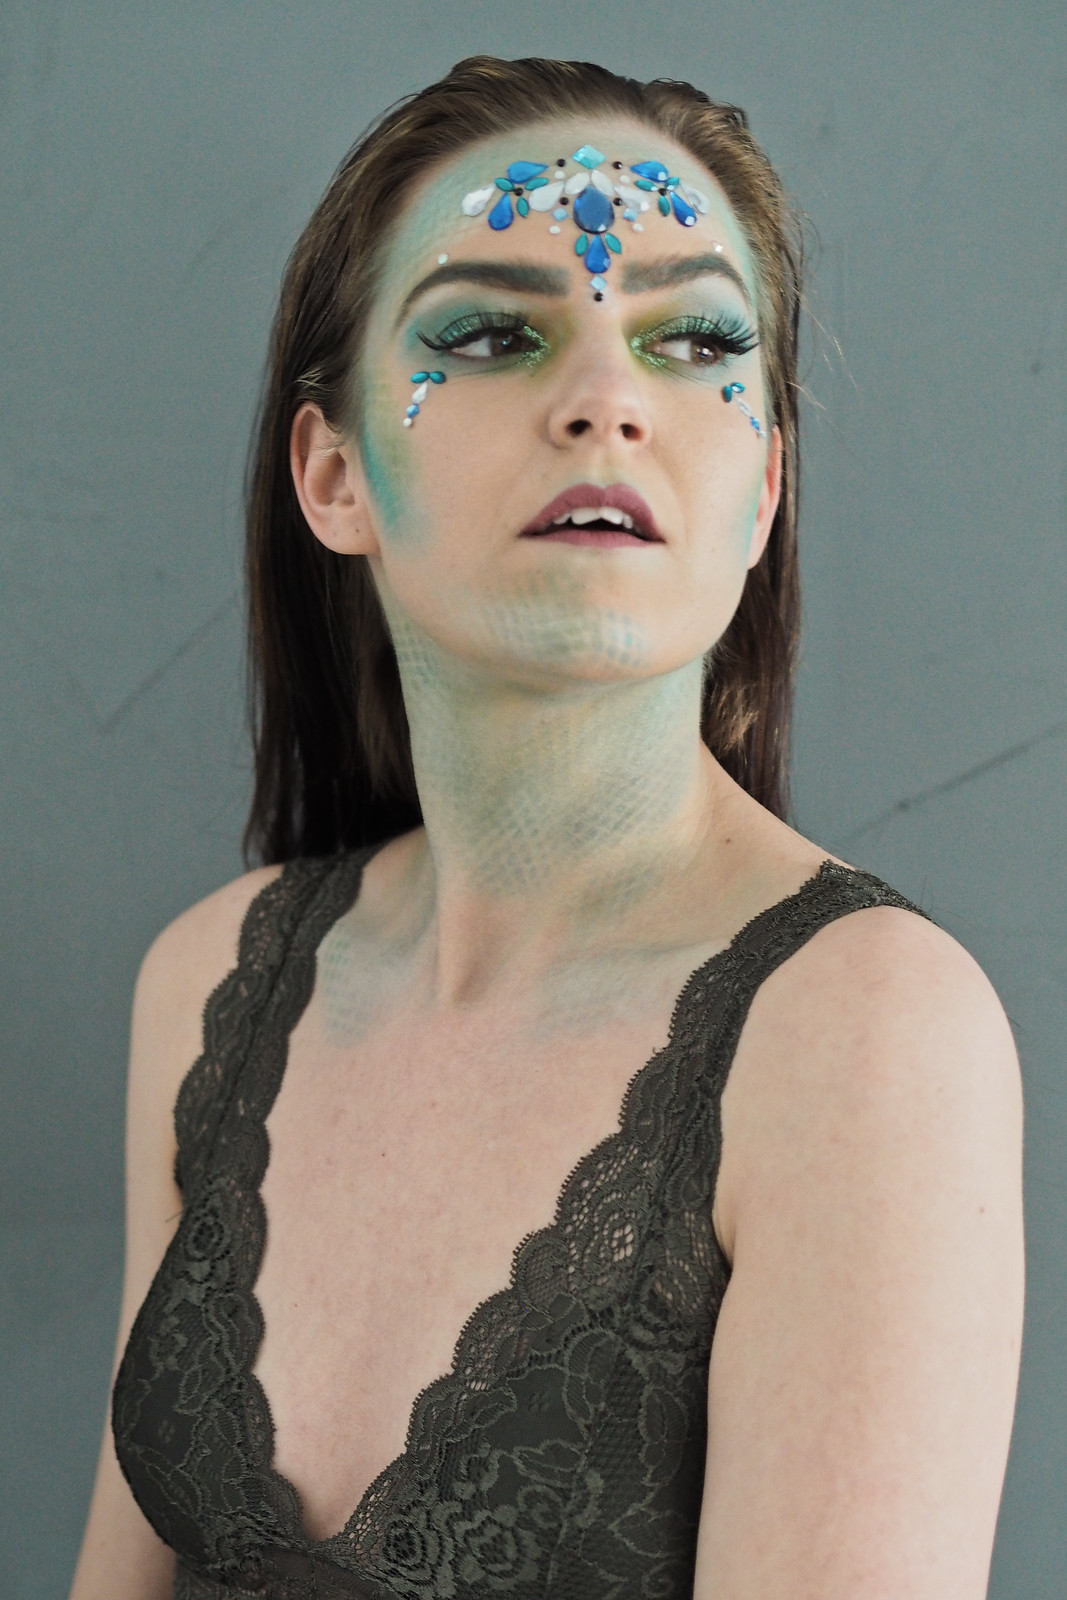 mermaid sfx makeup